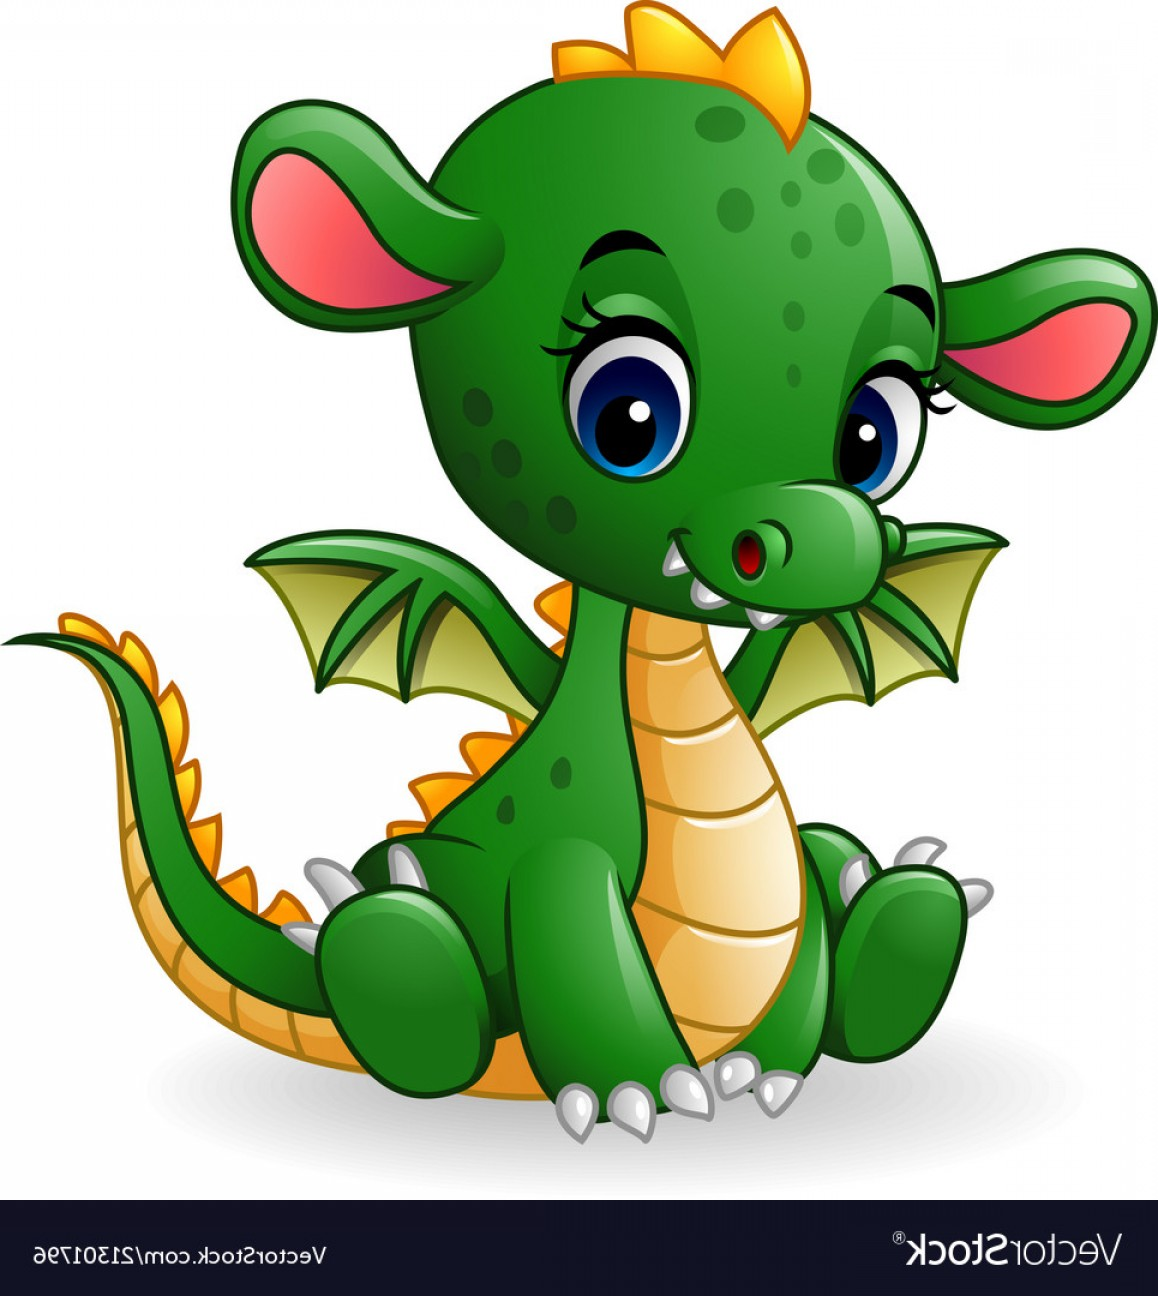 Baby Dragon Silhouette Vector: Cartoon Baby Dragon Sitting Vector